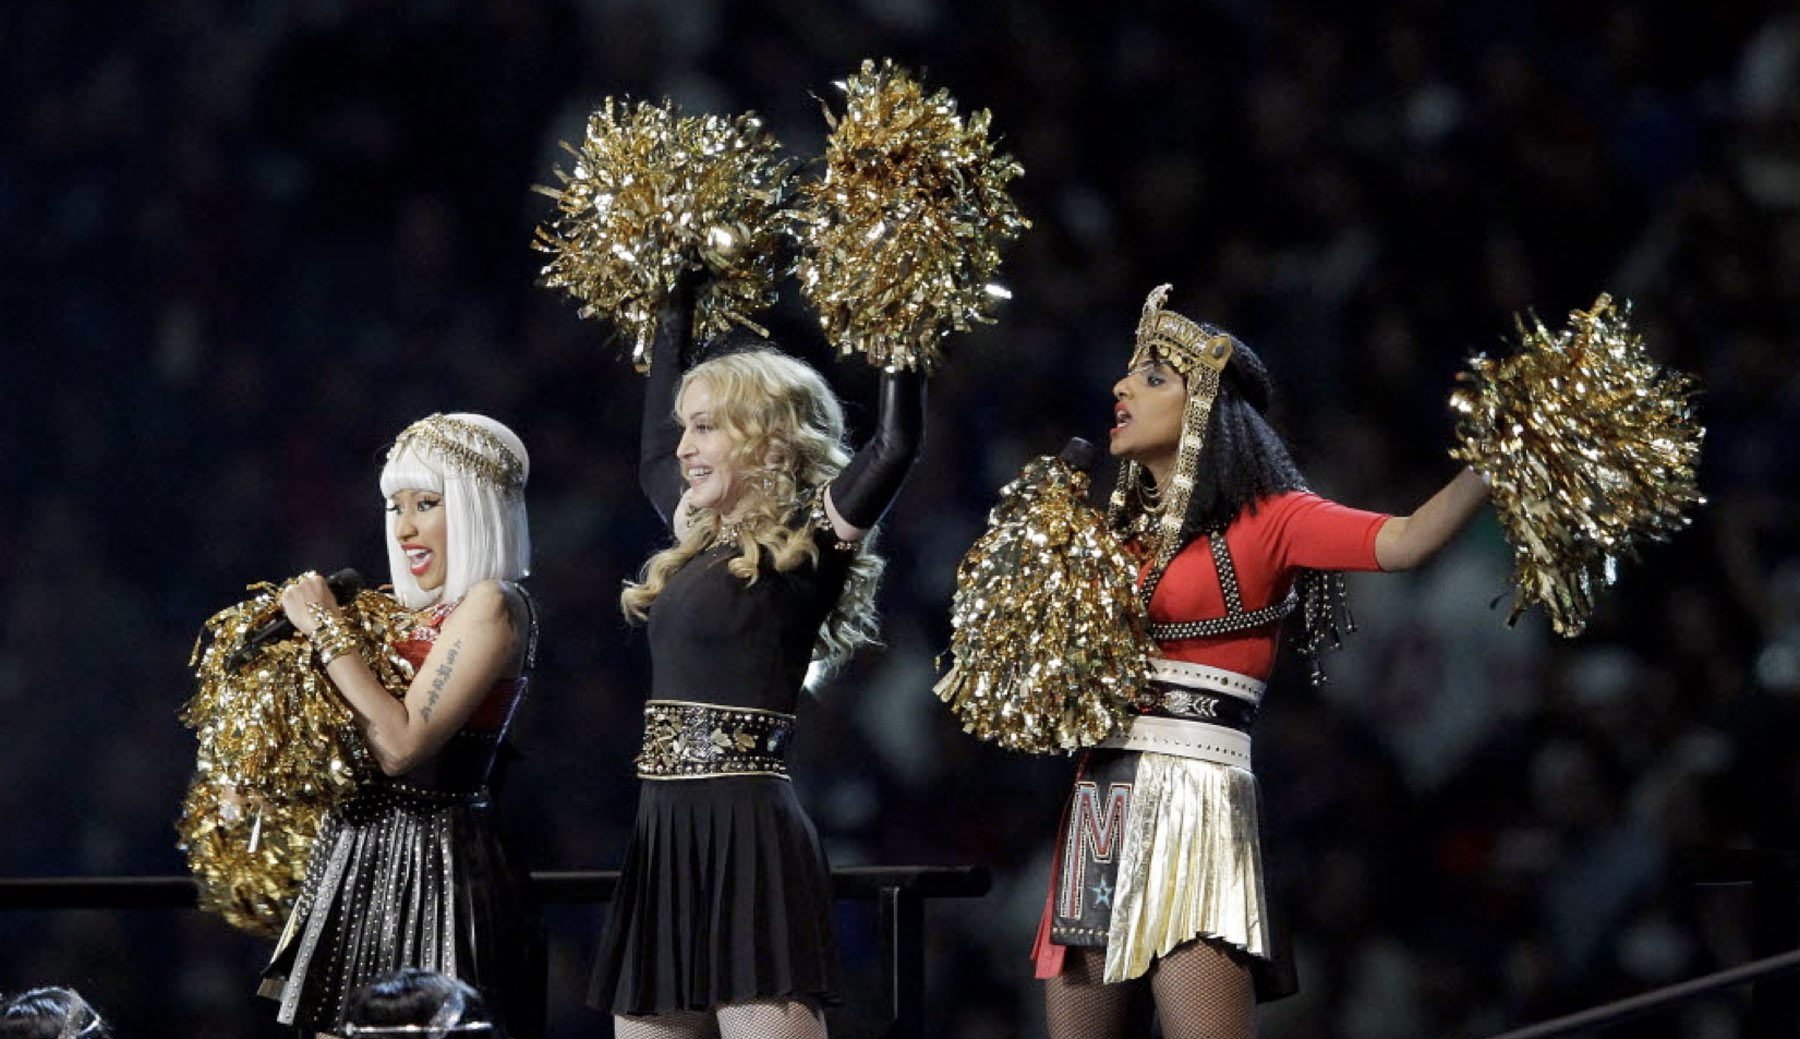 Madonna, center, performs with Nicki Minaj, left, and M.I.A. during halftime of the NFL Super Bowl XLVI football game between Feb. 5, 2012, in Indianapolis.